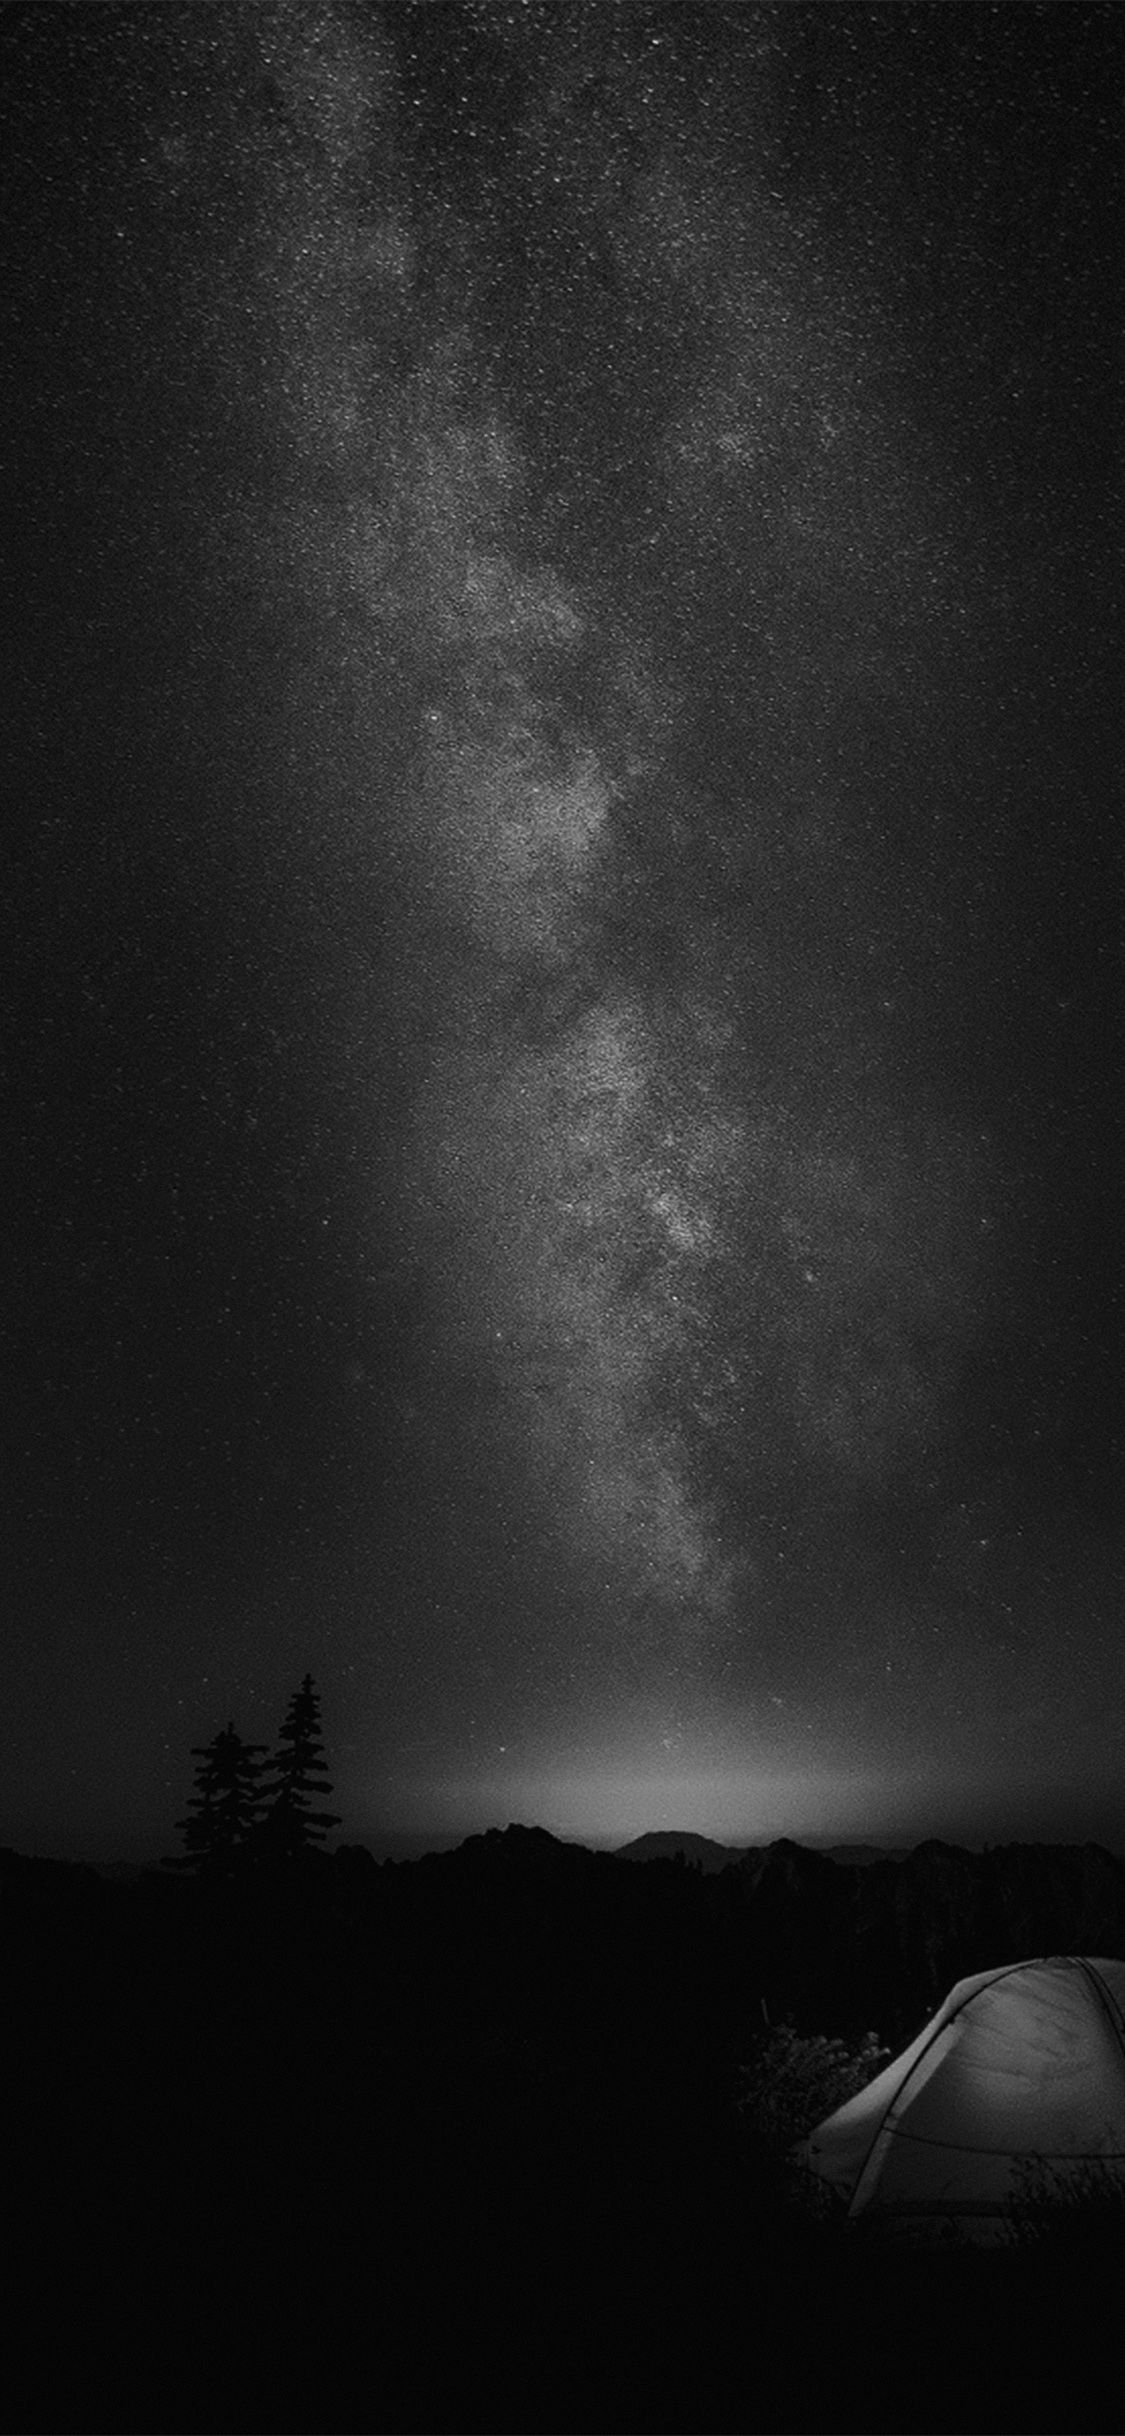 papers.co my86 camping night star galaxy milky sky dark space bw dark 41 iphone wallpaper